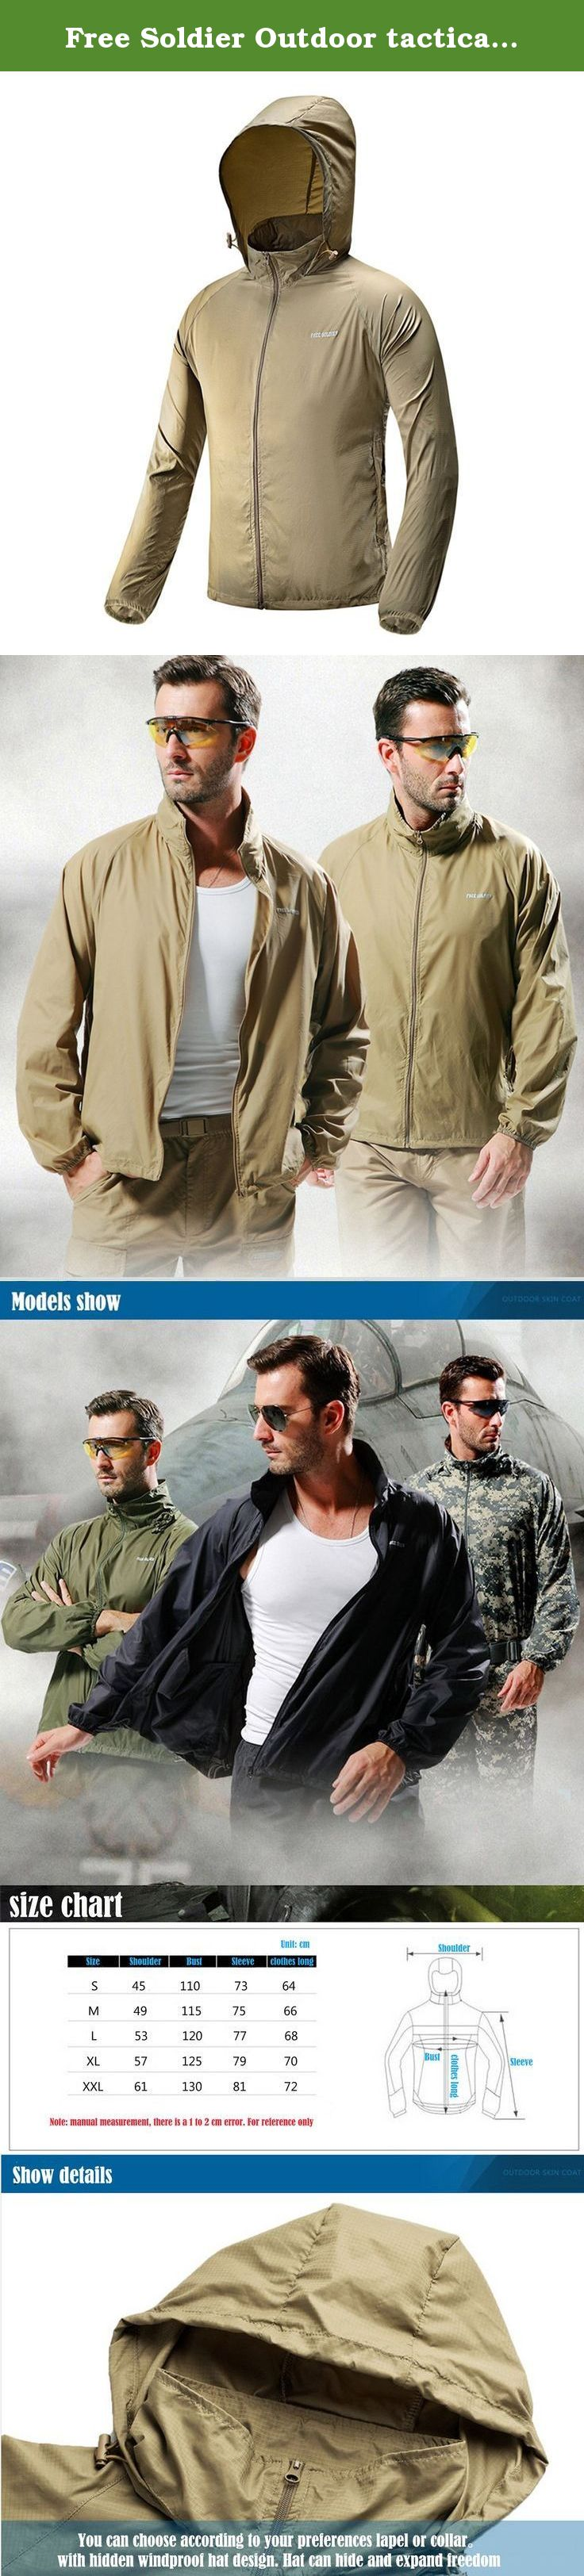 Free soldier outdoor tactical skin coat ultralight and